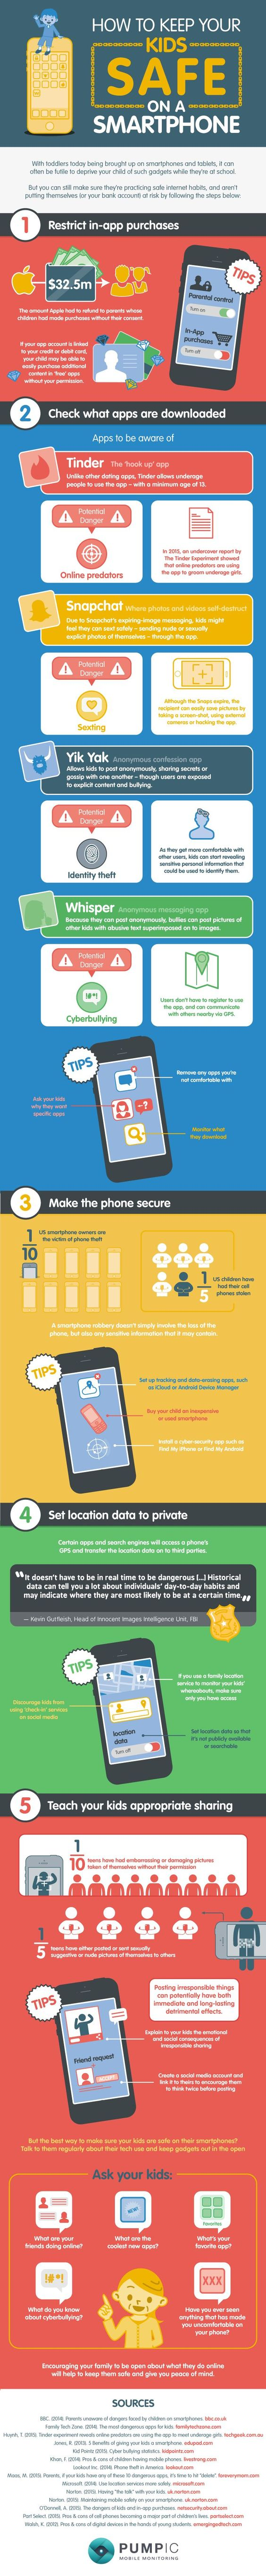 How to keep your kids sage on a smartphone! A cheat sheet for parents.: